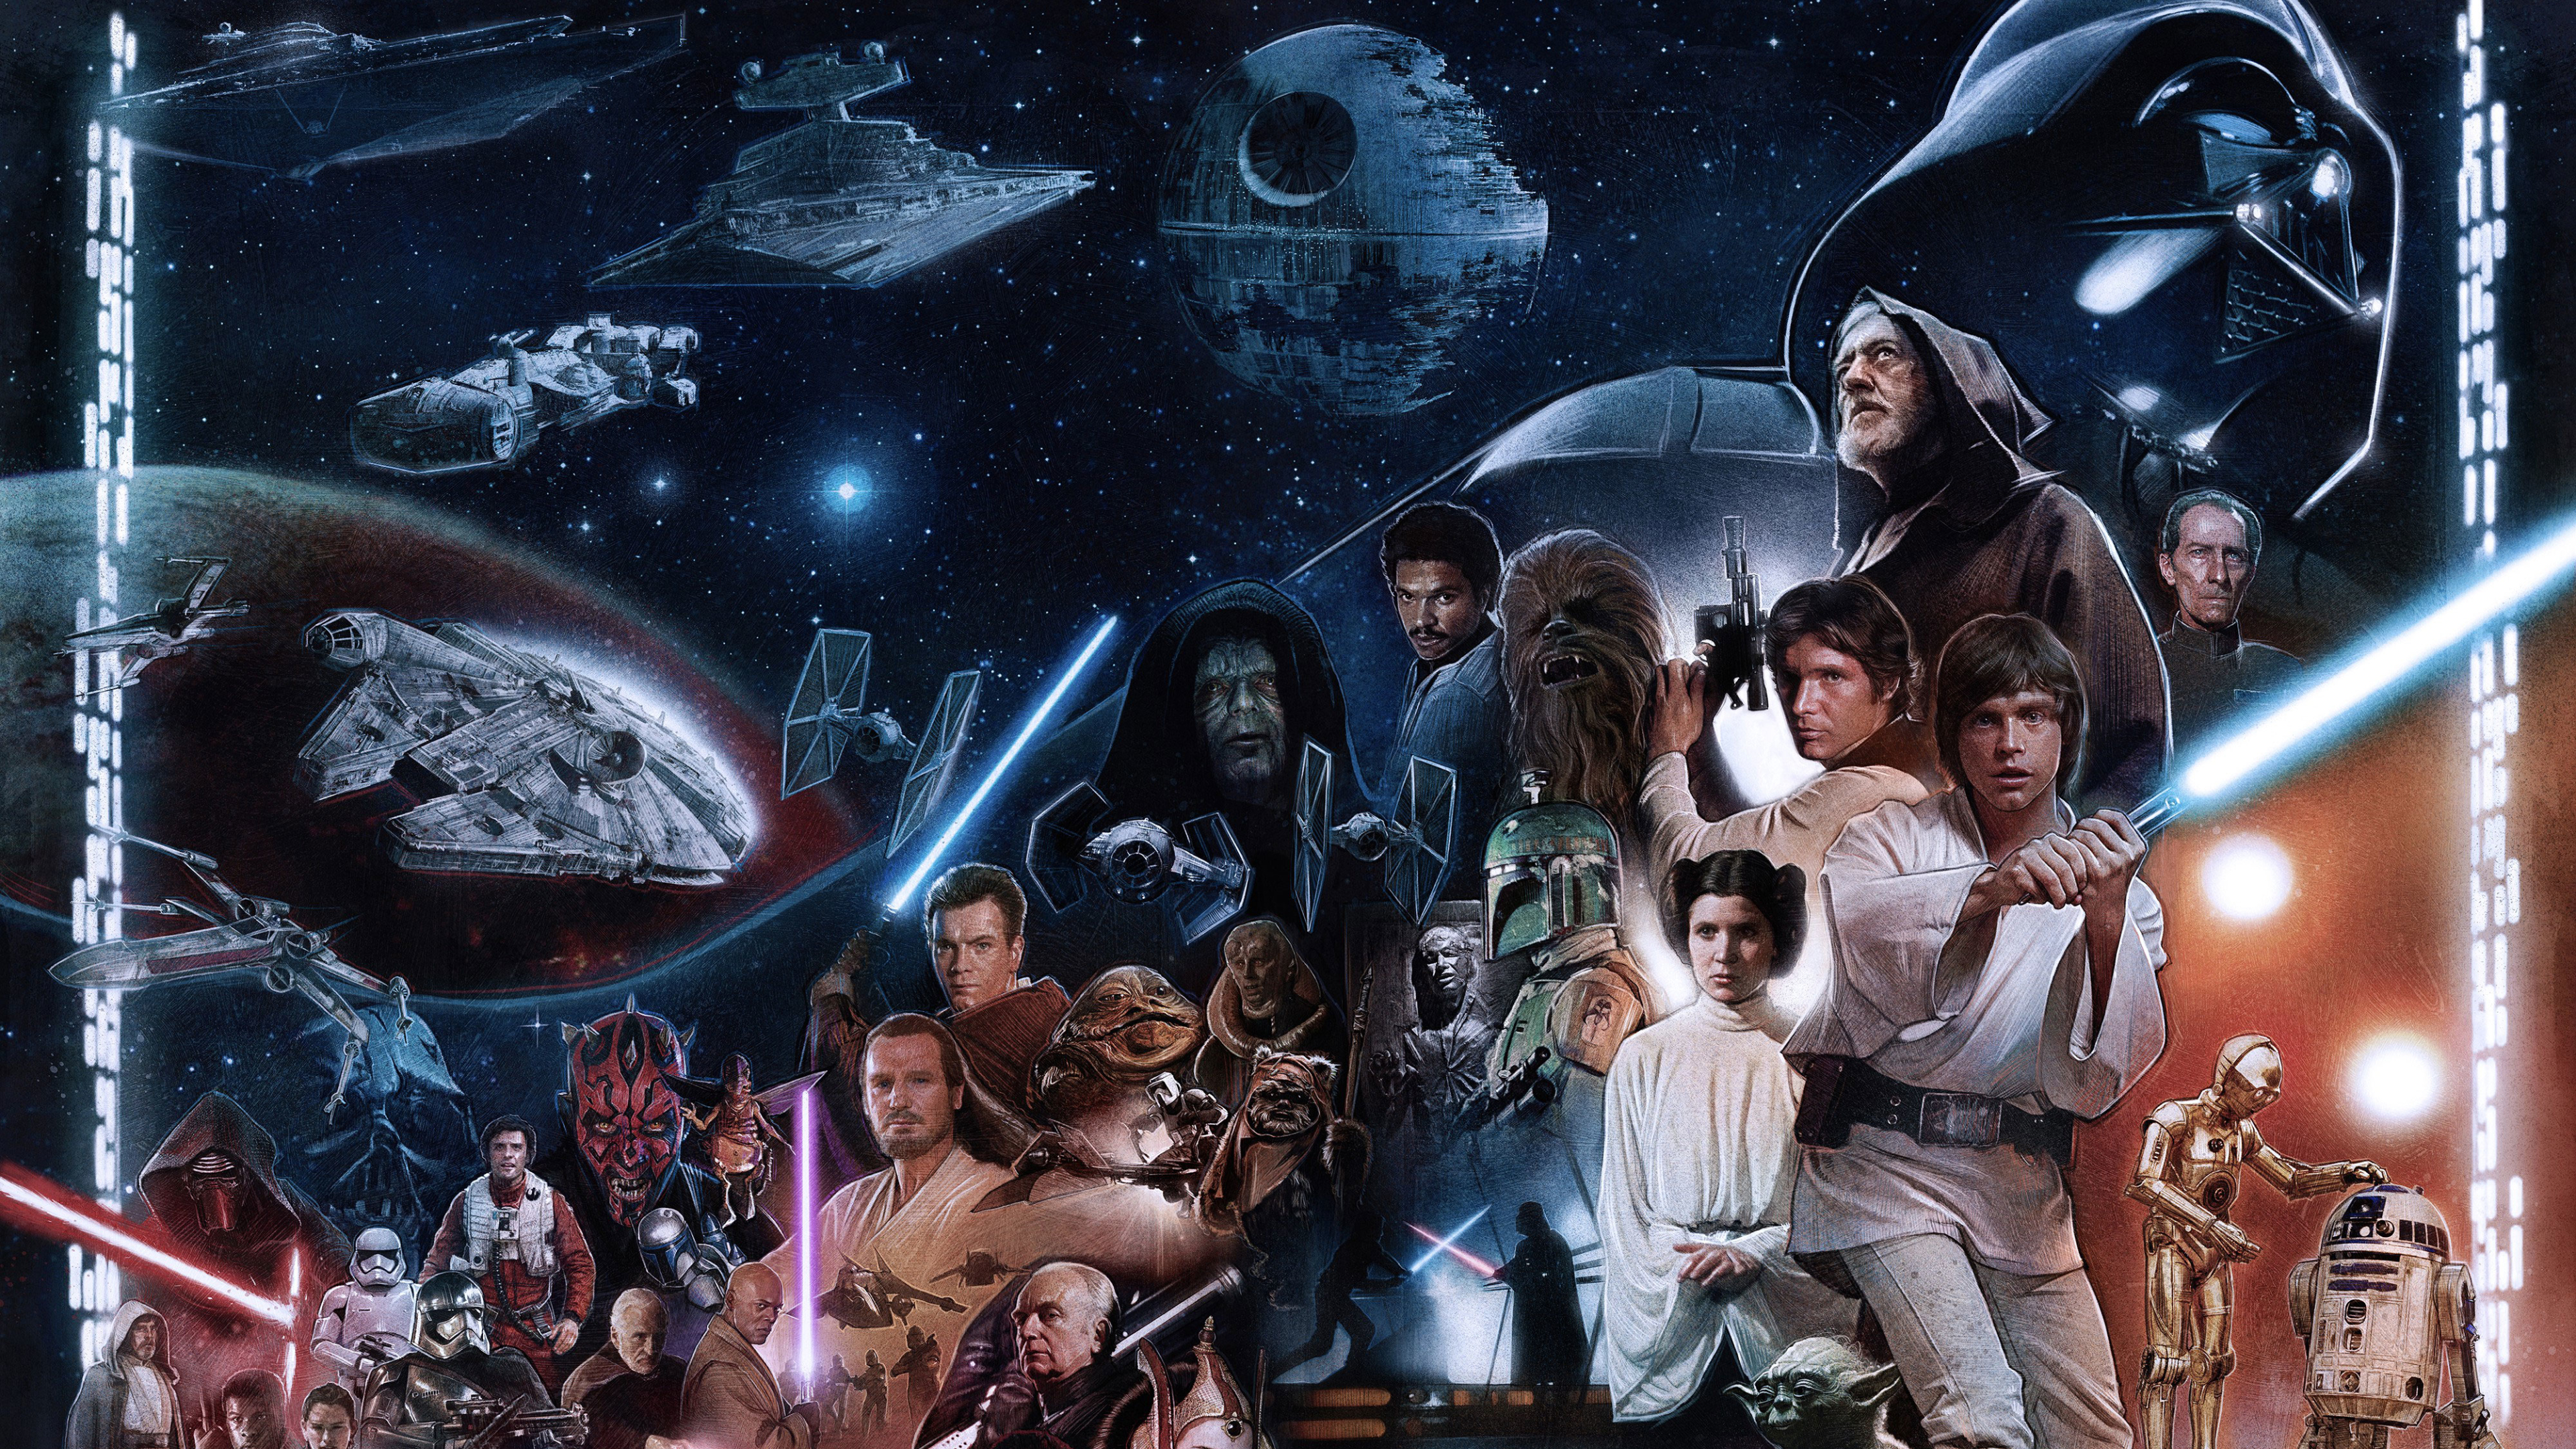 3840x2160 Skywalker Star Wars 4k Wallpaper Hd Movies 4k Wallpapers Images Photos And Background